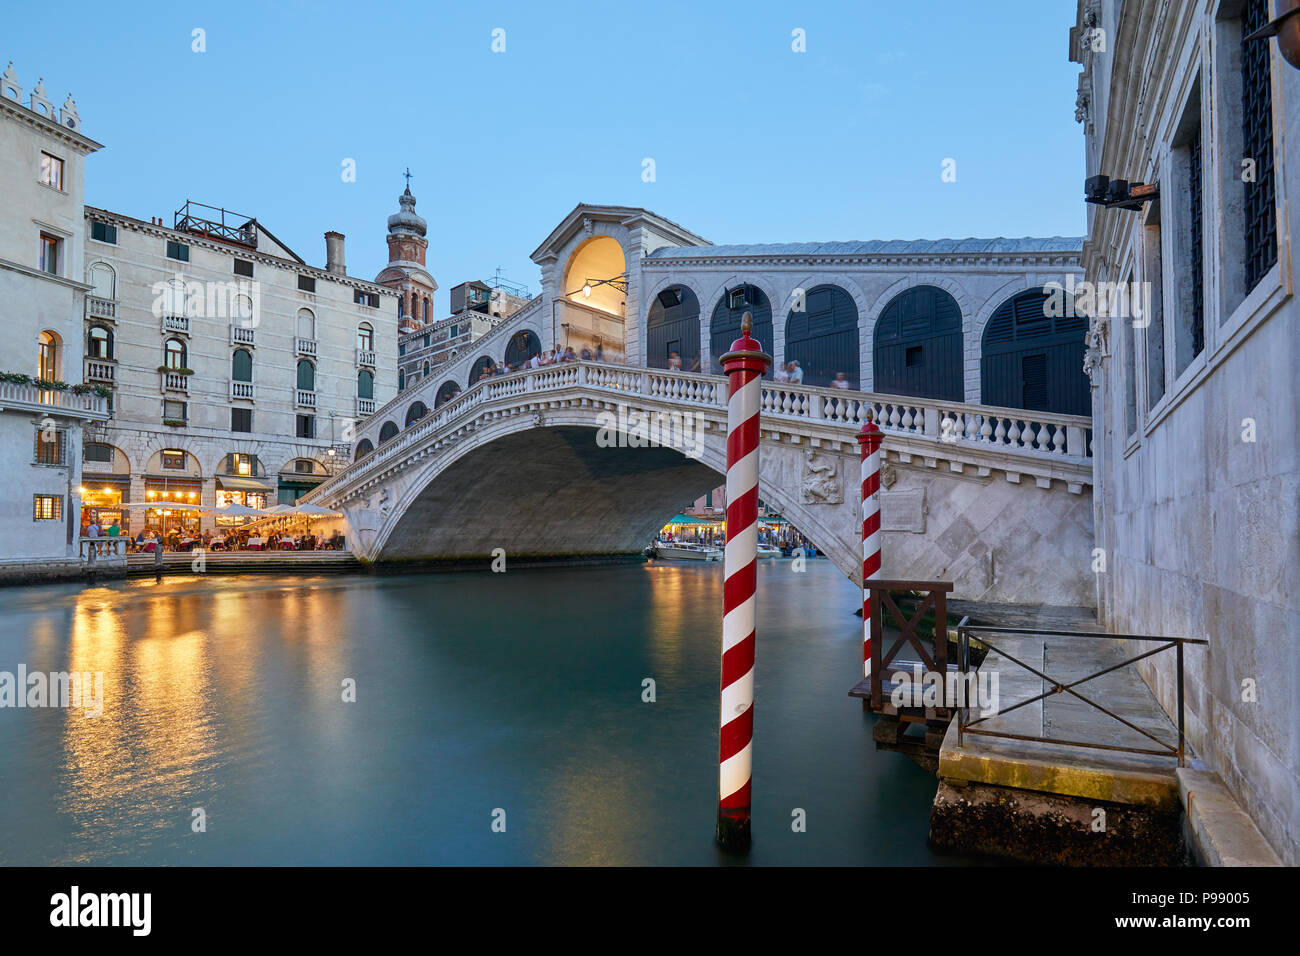 The Grand Canal and Rialto bridge with people, evening in Venice, Italy - Stock Image